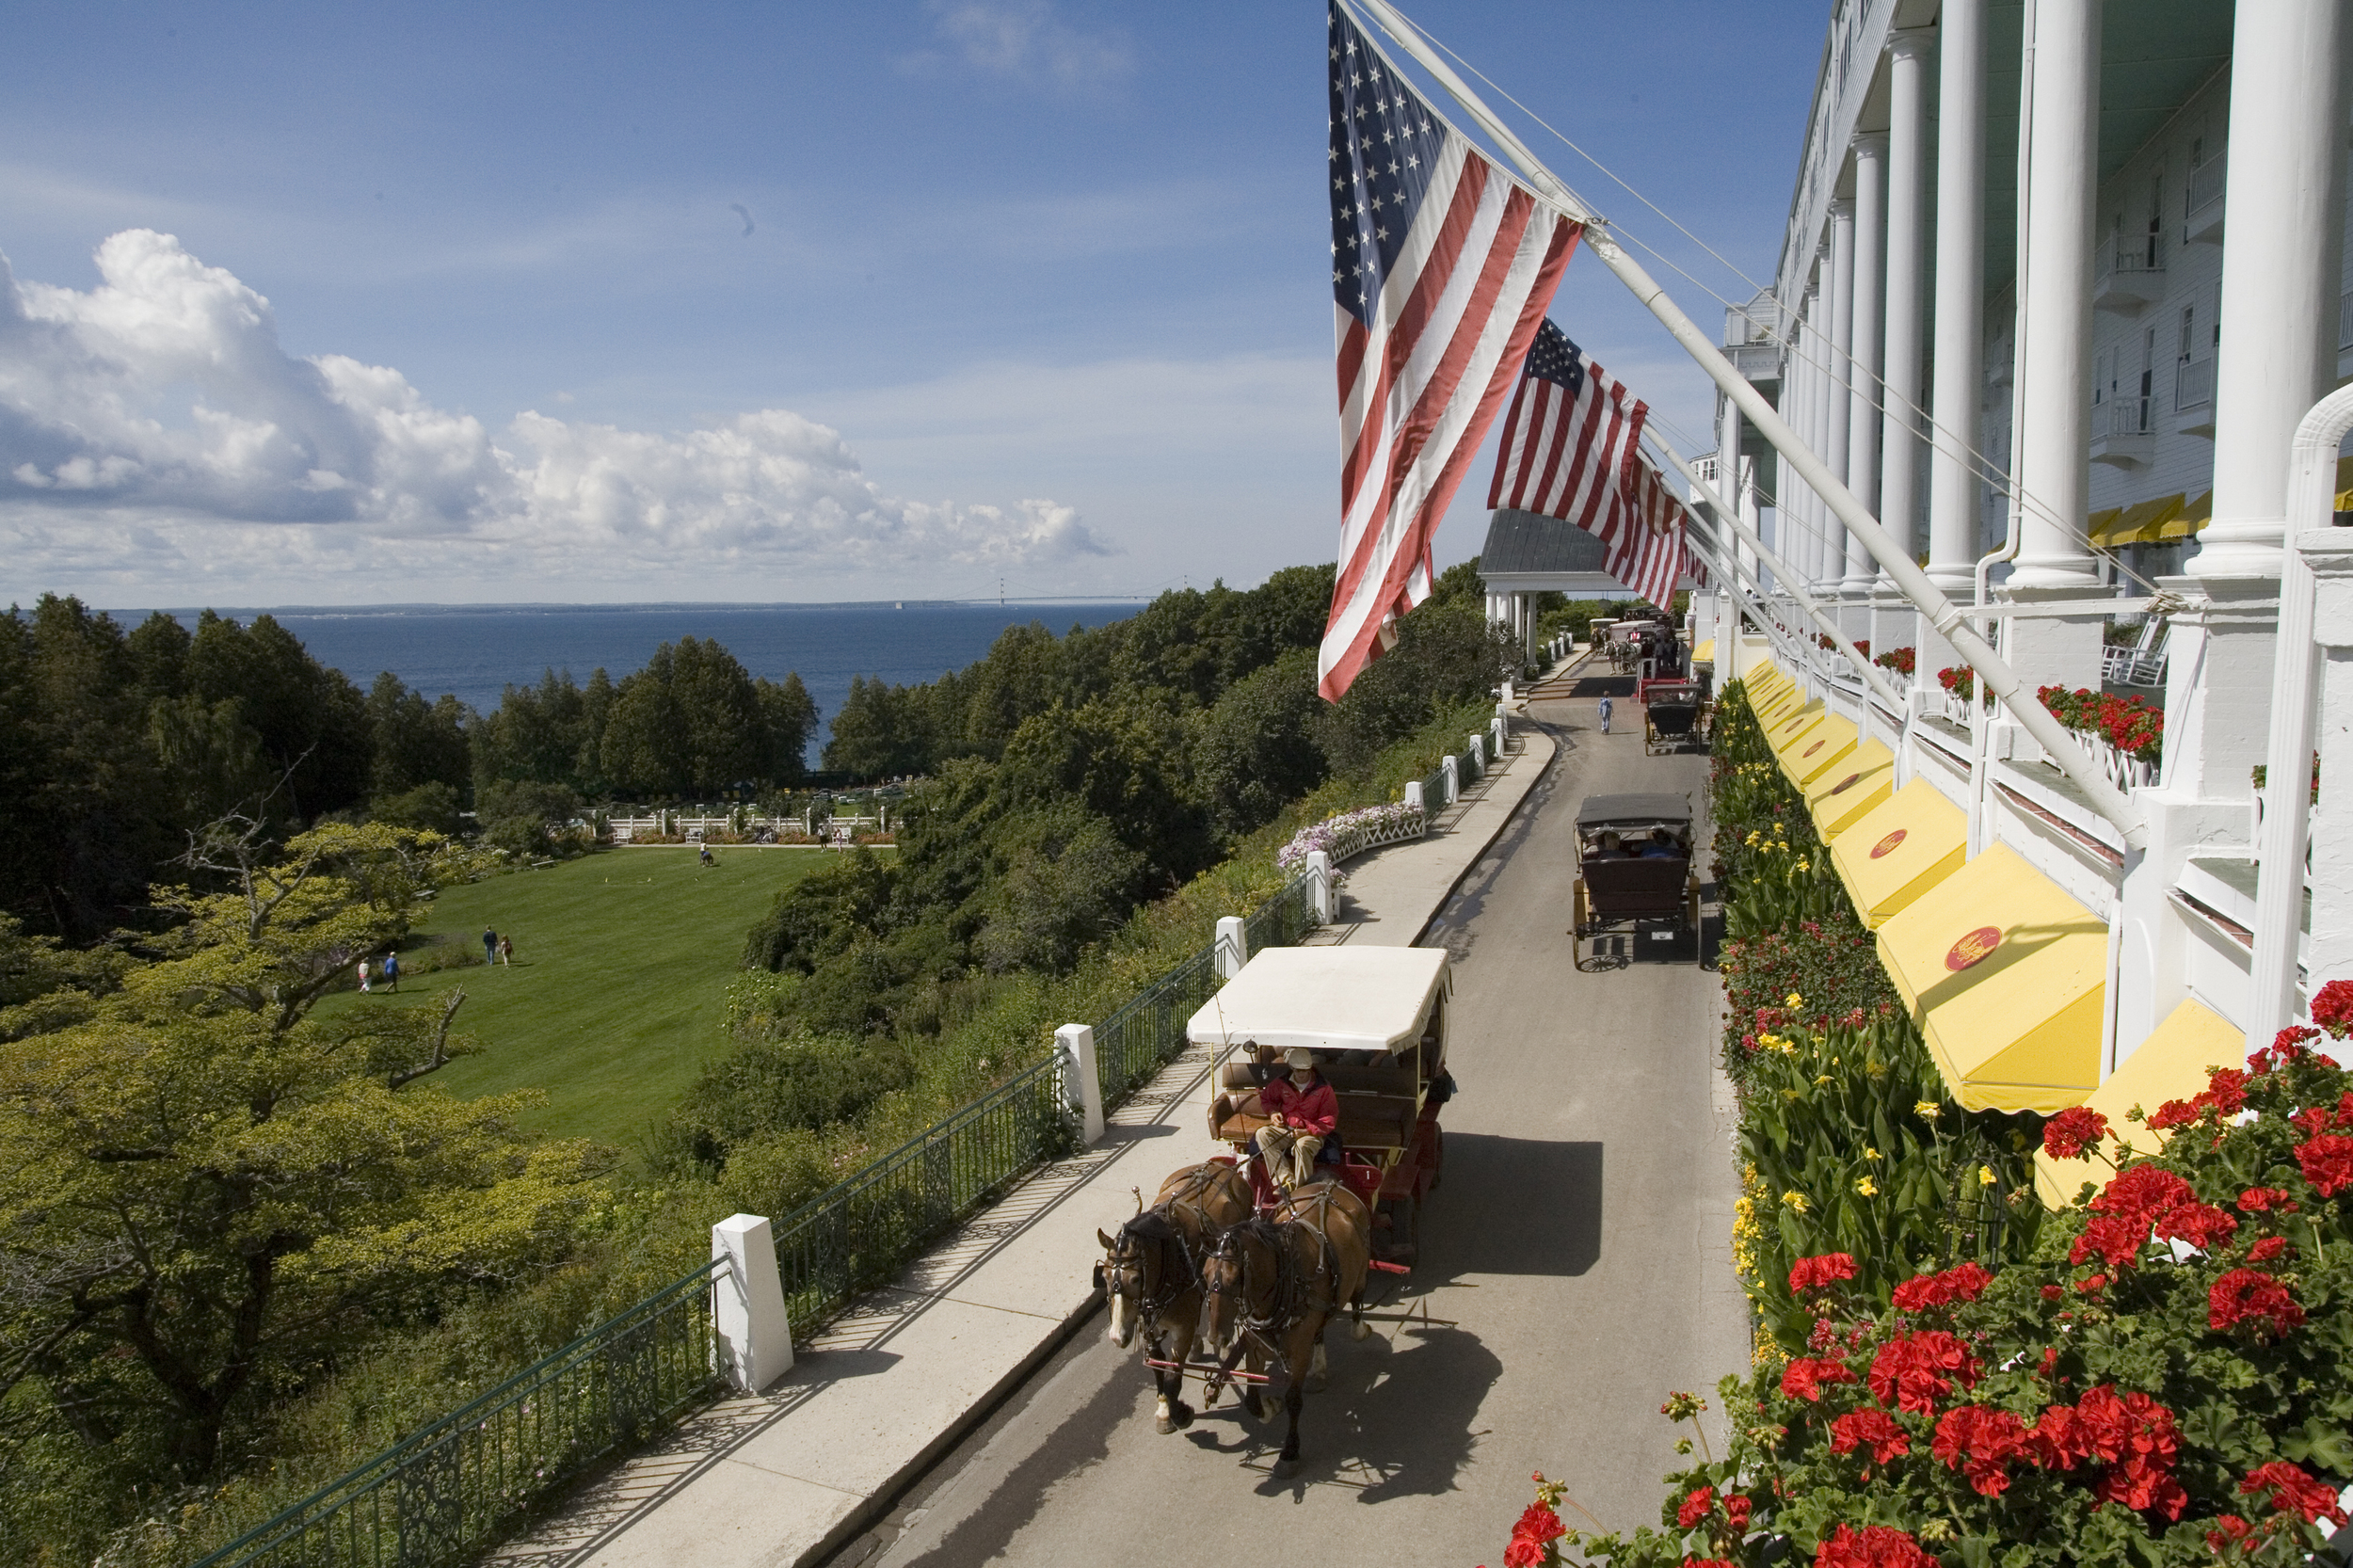 The Grand Hotel of Mackinac Island